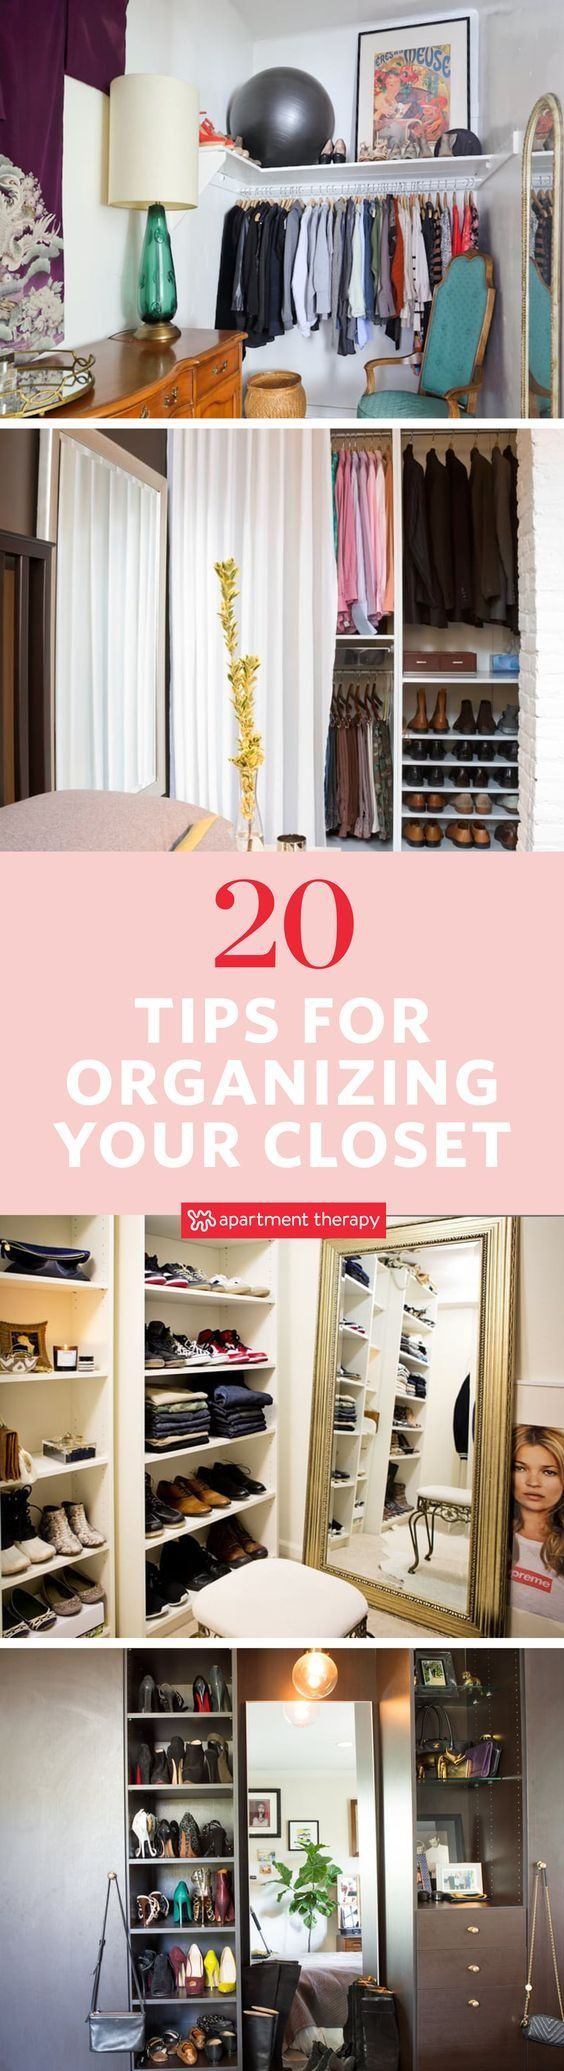 20 Smart Ways to Organize Your Bedroom